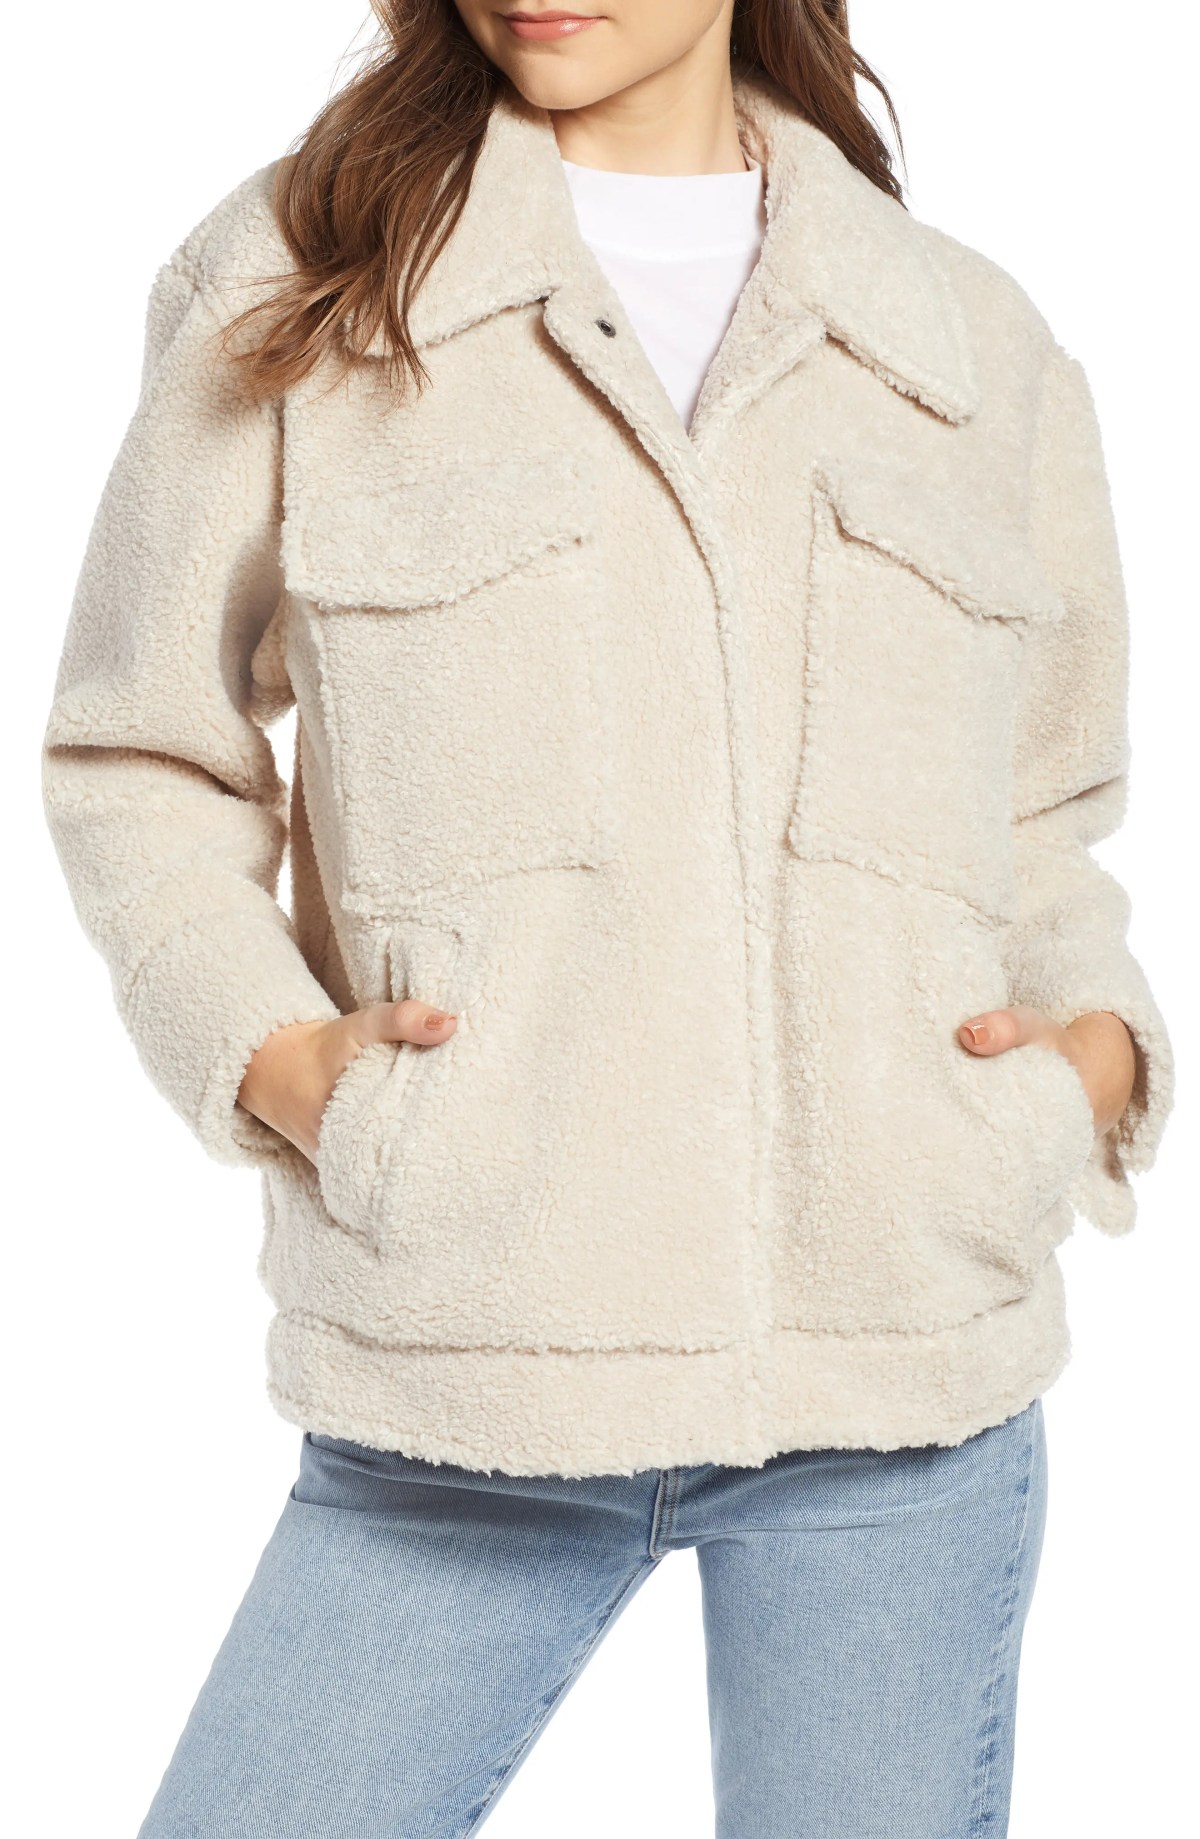 SOMETHING NAVY Faux Shearling Jacket, Main, color, IVORY BIRCH